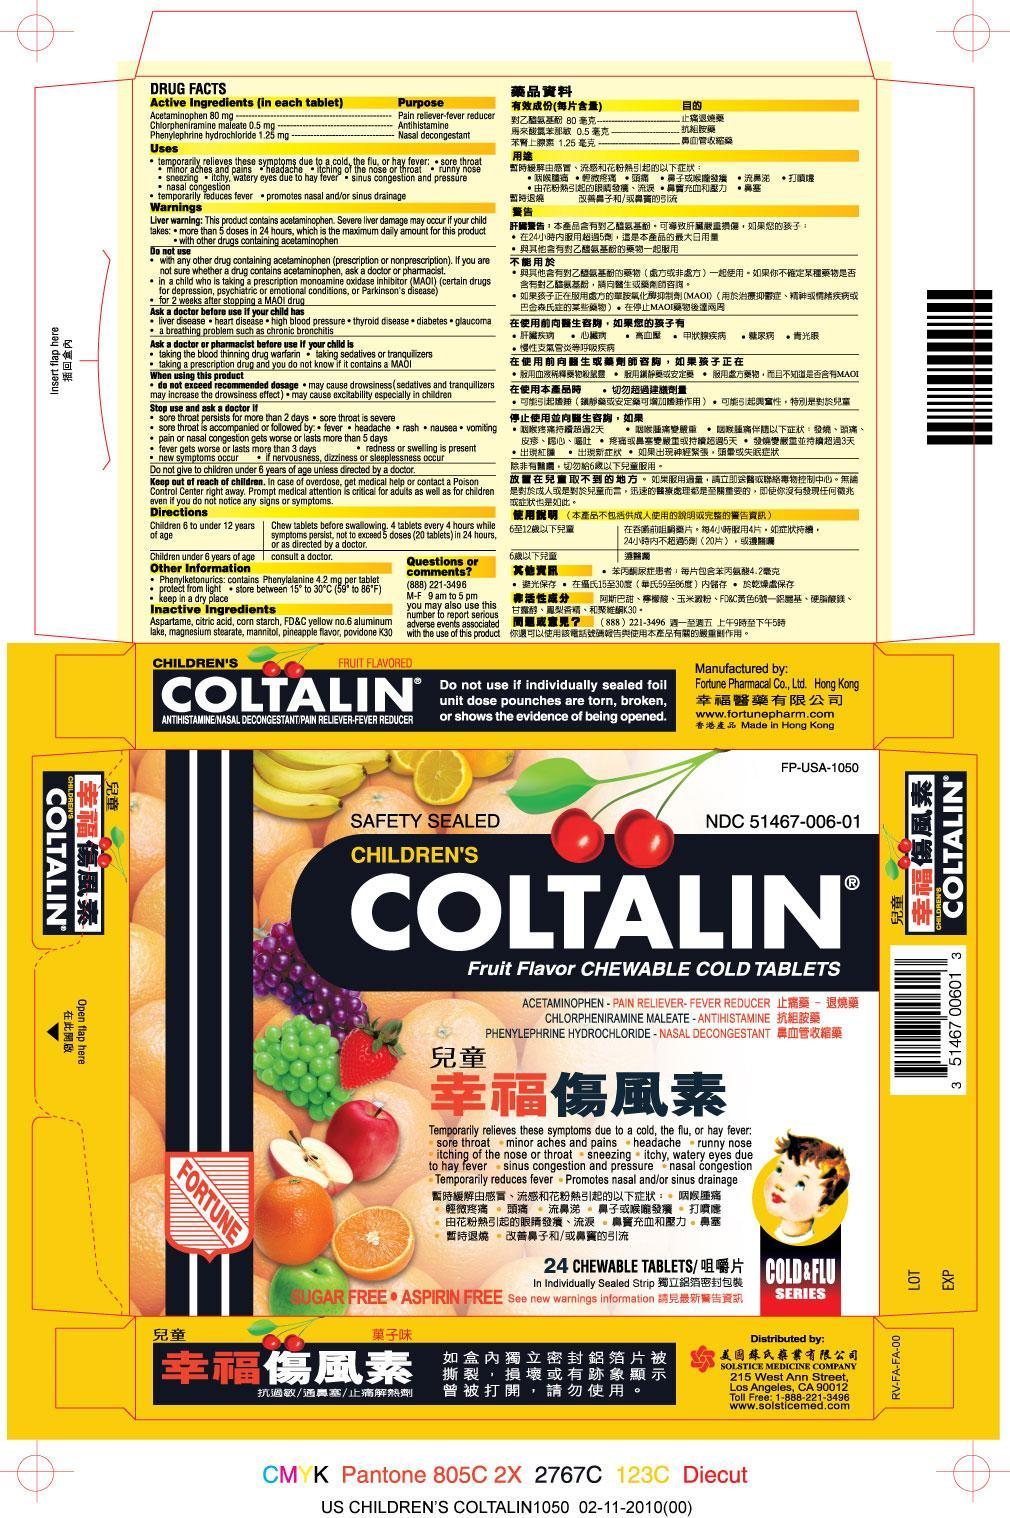 Childrens Coltalin (Acetaminophen, Chlorpheniramine Maleate, Phenylephrine Hydrochloride) Tablet, Chewable [Fortune Pharmacal Company Limited]